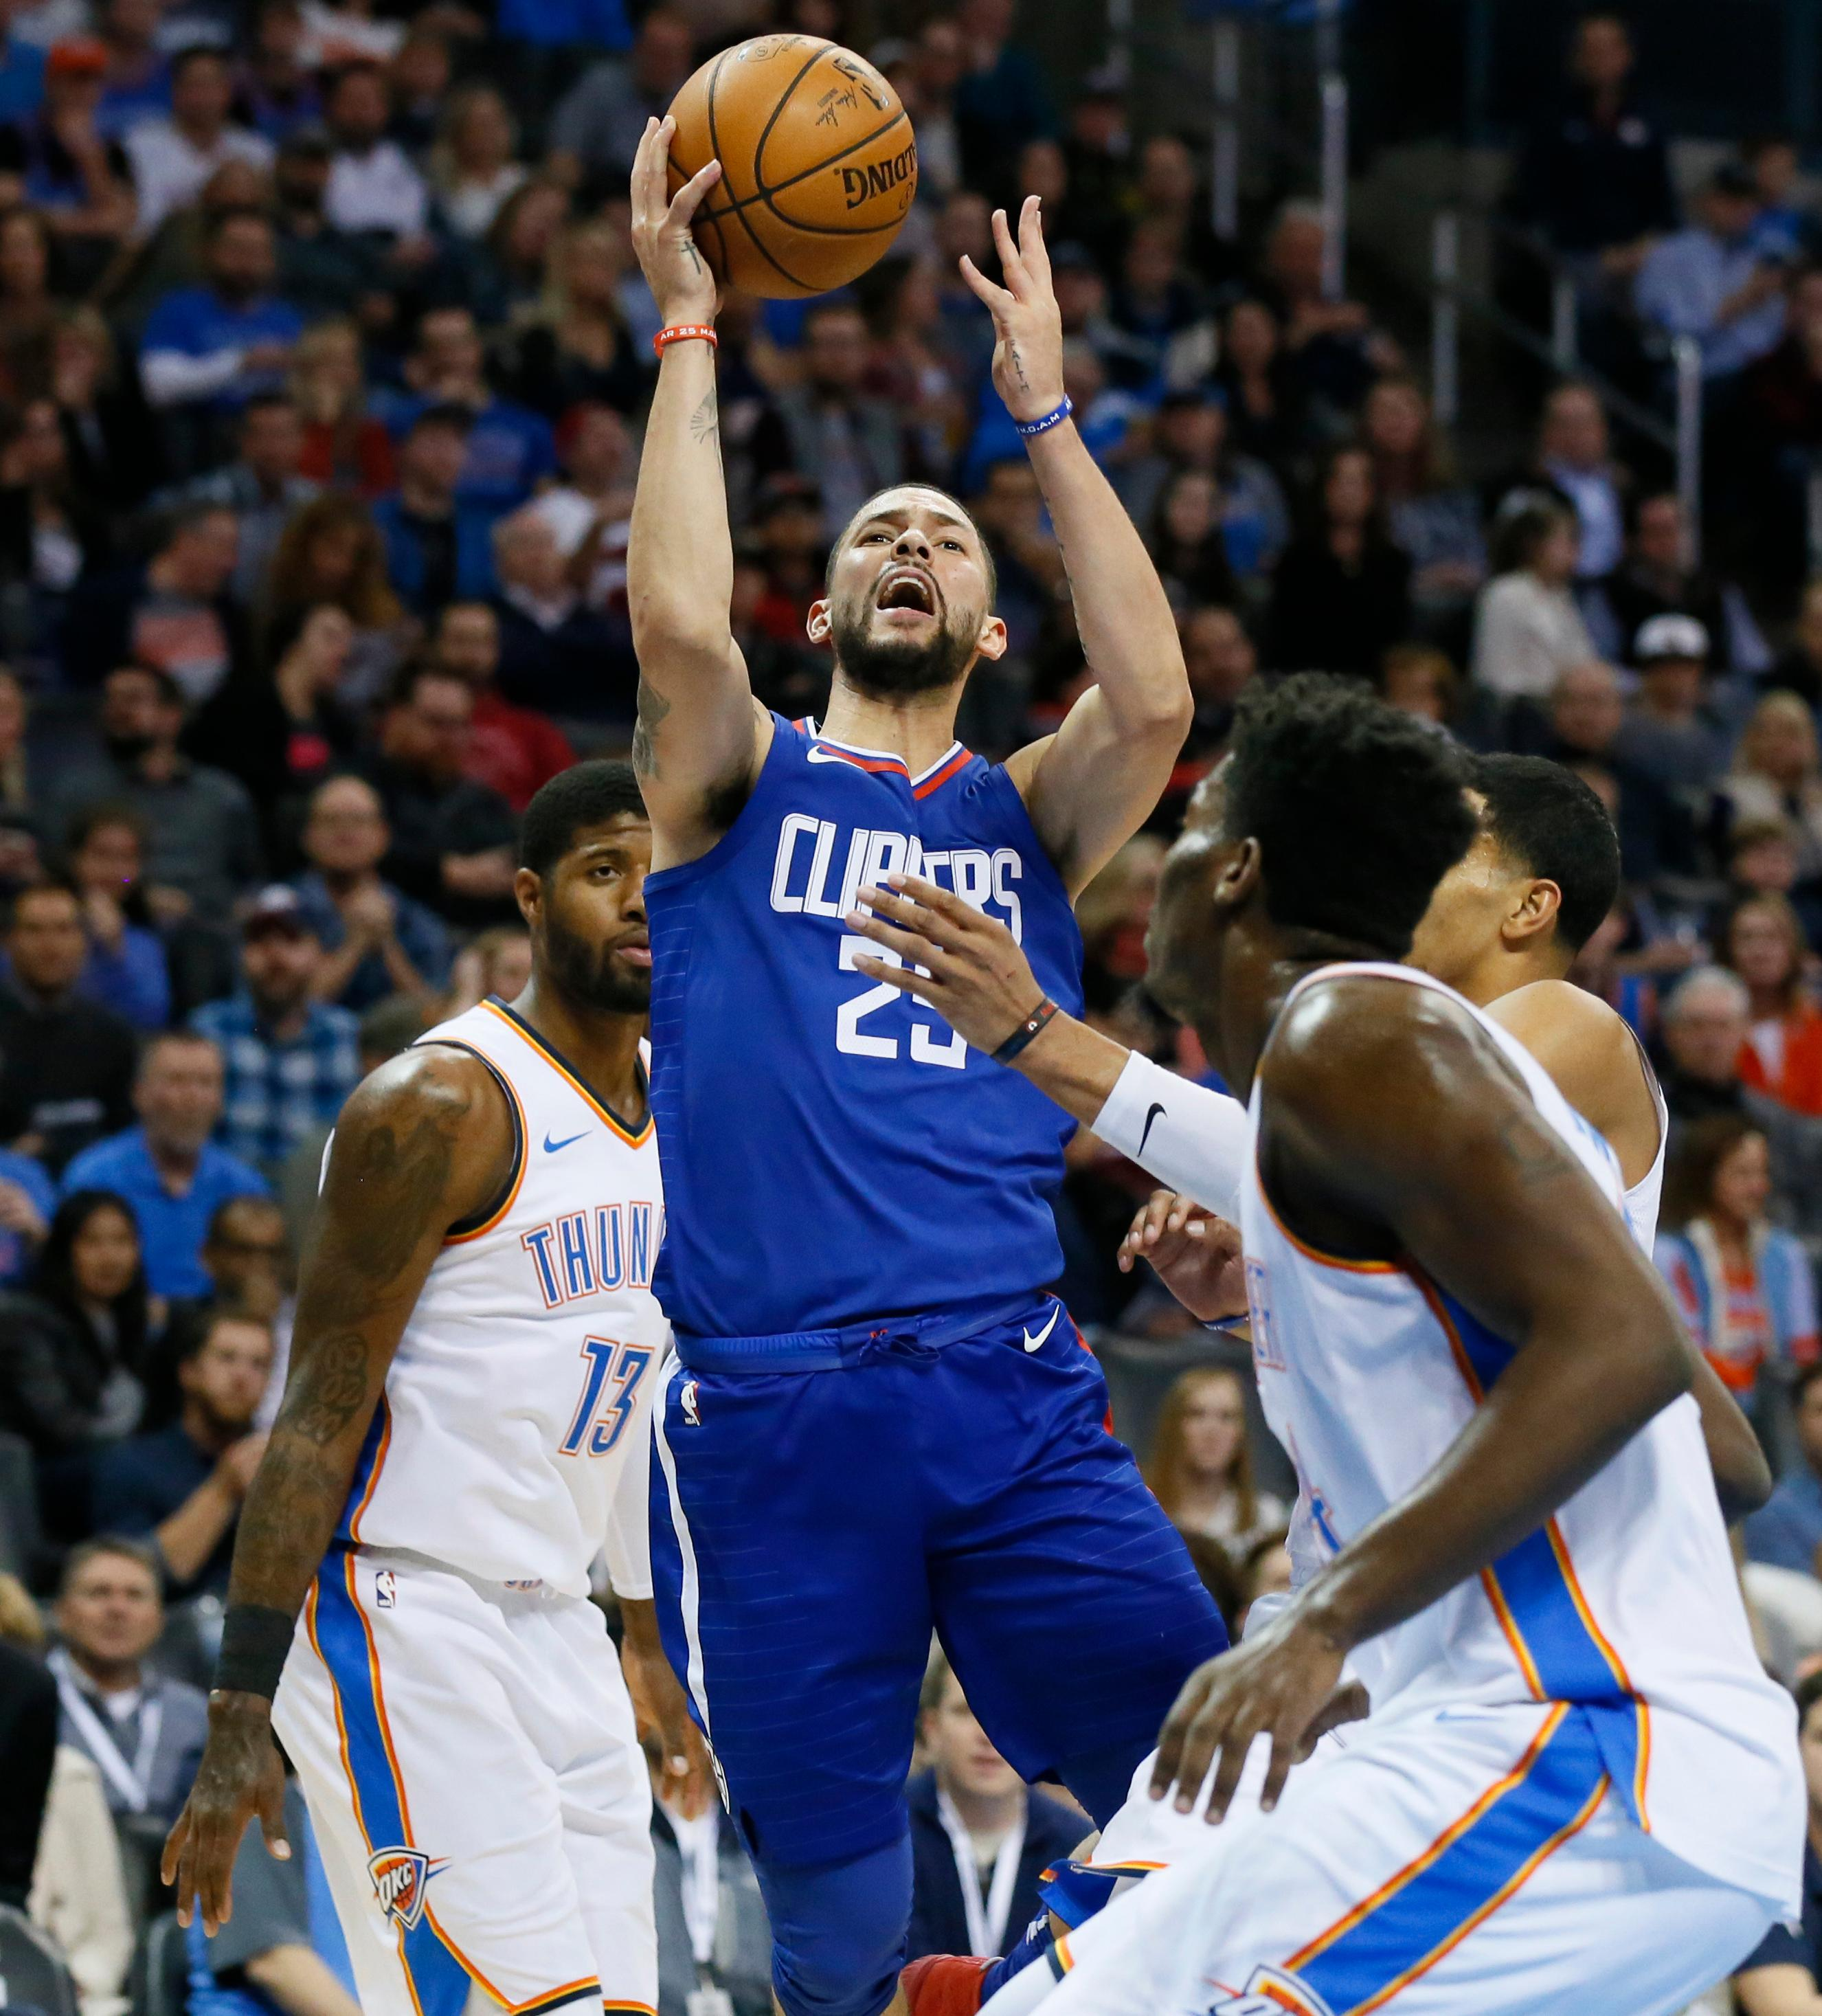 Los Angeles Clippers guard Austin Rivers (25) loses the ball as he drive between Oklahoma City Thunder forward Paul George (13), center Dakari Johnson, center and guard Andre Roberson, right, in the first half of an NBA basketball game in Oklahoma City, Friday, Nov. 10, 2017. (AP Photo/Sue Ogrocki)